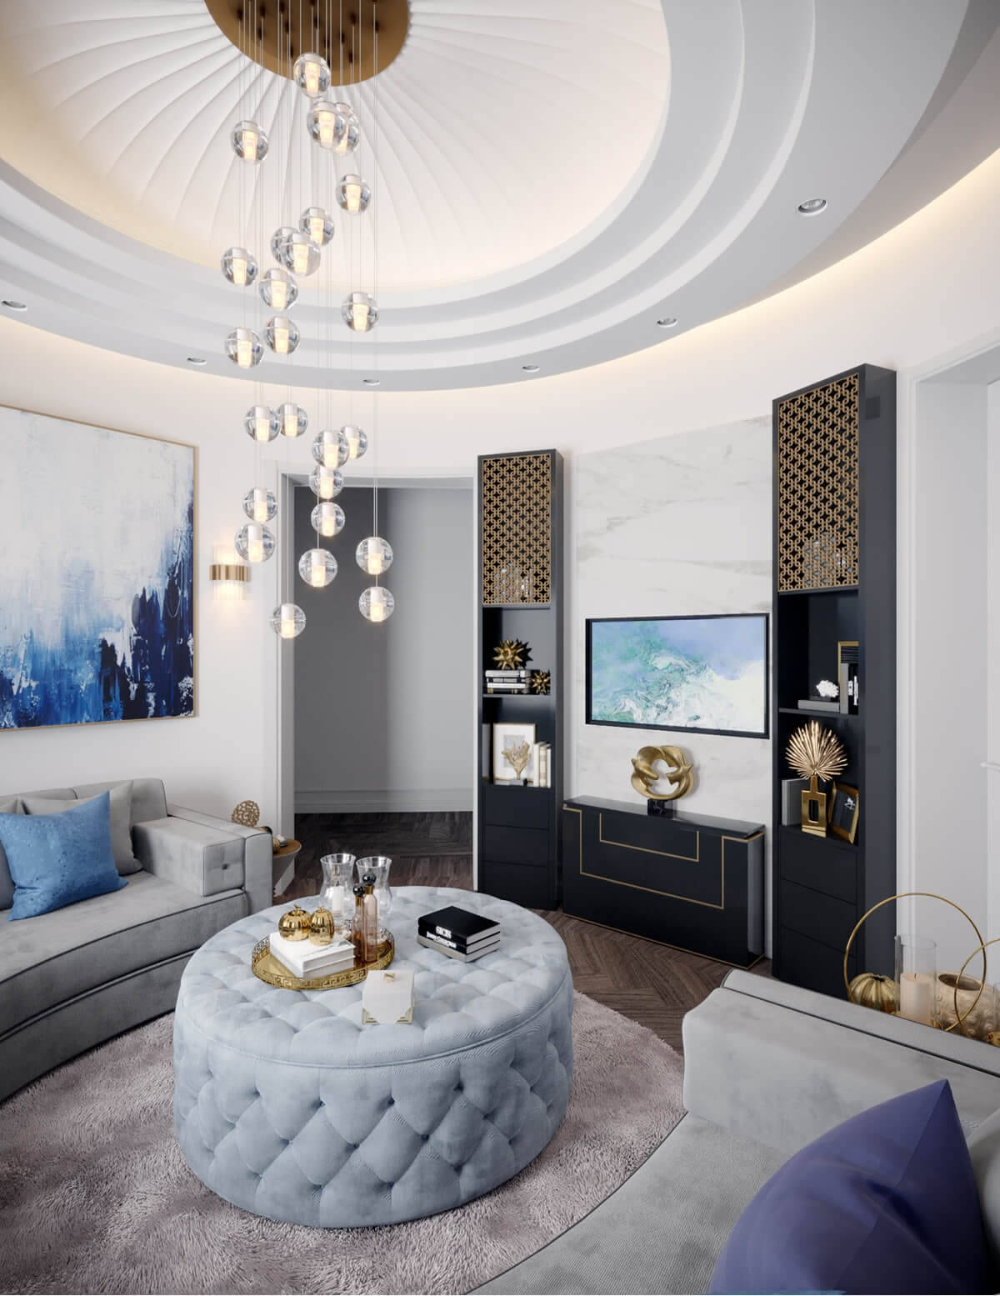 Interior Design Projects Neoclassical Palace in Riyadh by Comelite Architecture 2 (1) interior design projects Interior Design Projects: Neoclassical Palace in Riyadh by Comelite Architecture Interior Design Projects Neoclassical Palace in Riyadh by Comelite Architecture 2 1